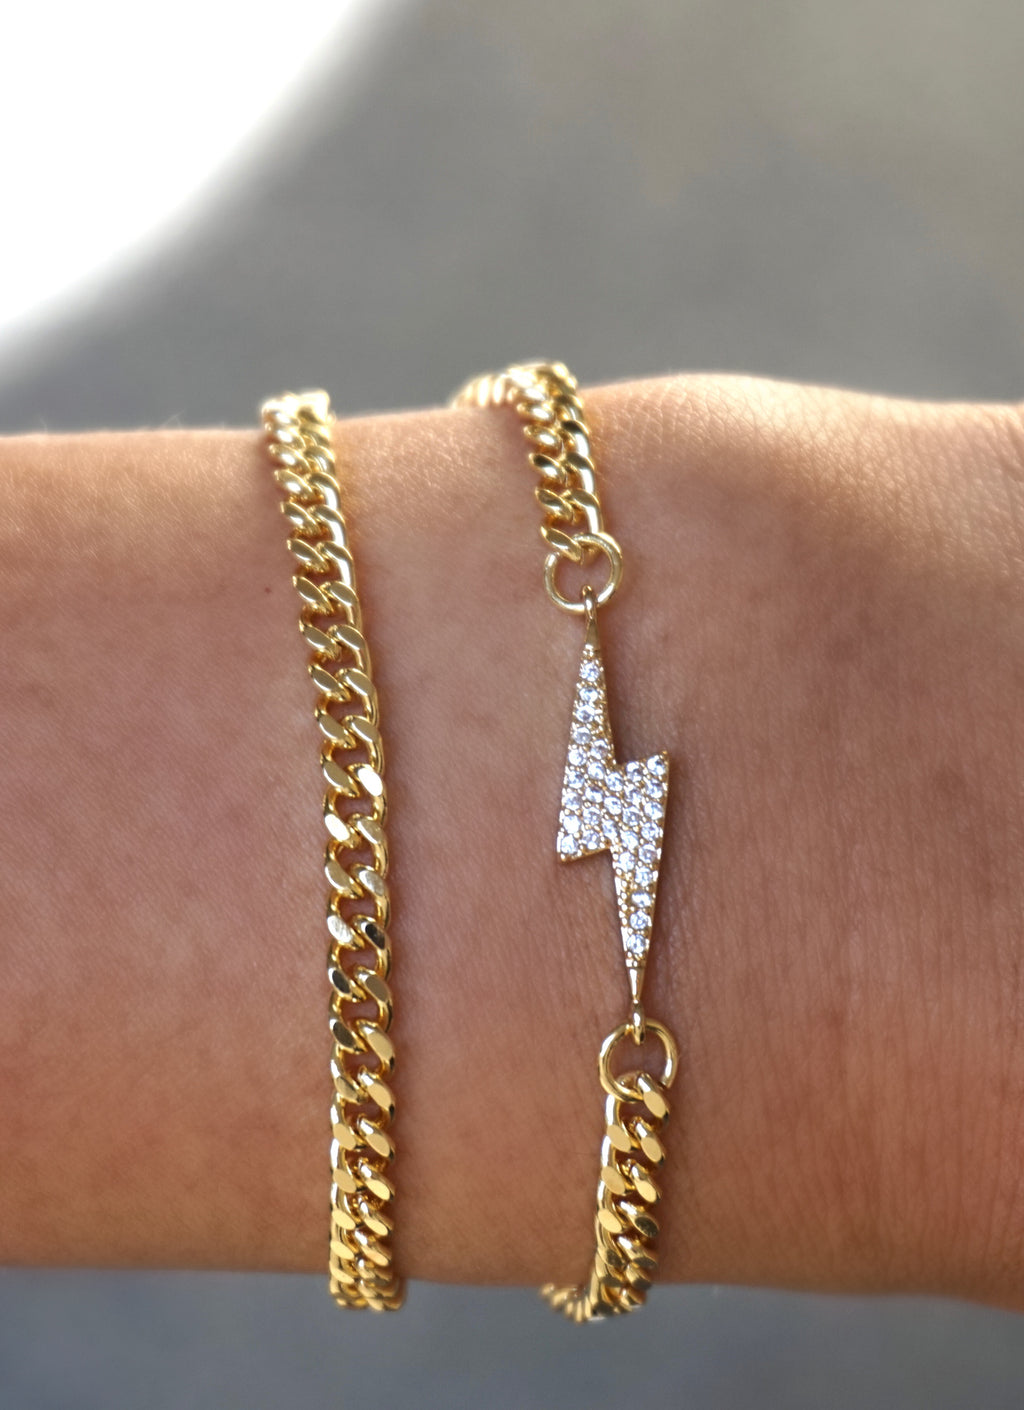 Double Wrap Lightning Bolt Chain Bracelet